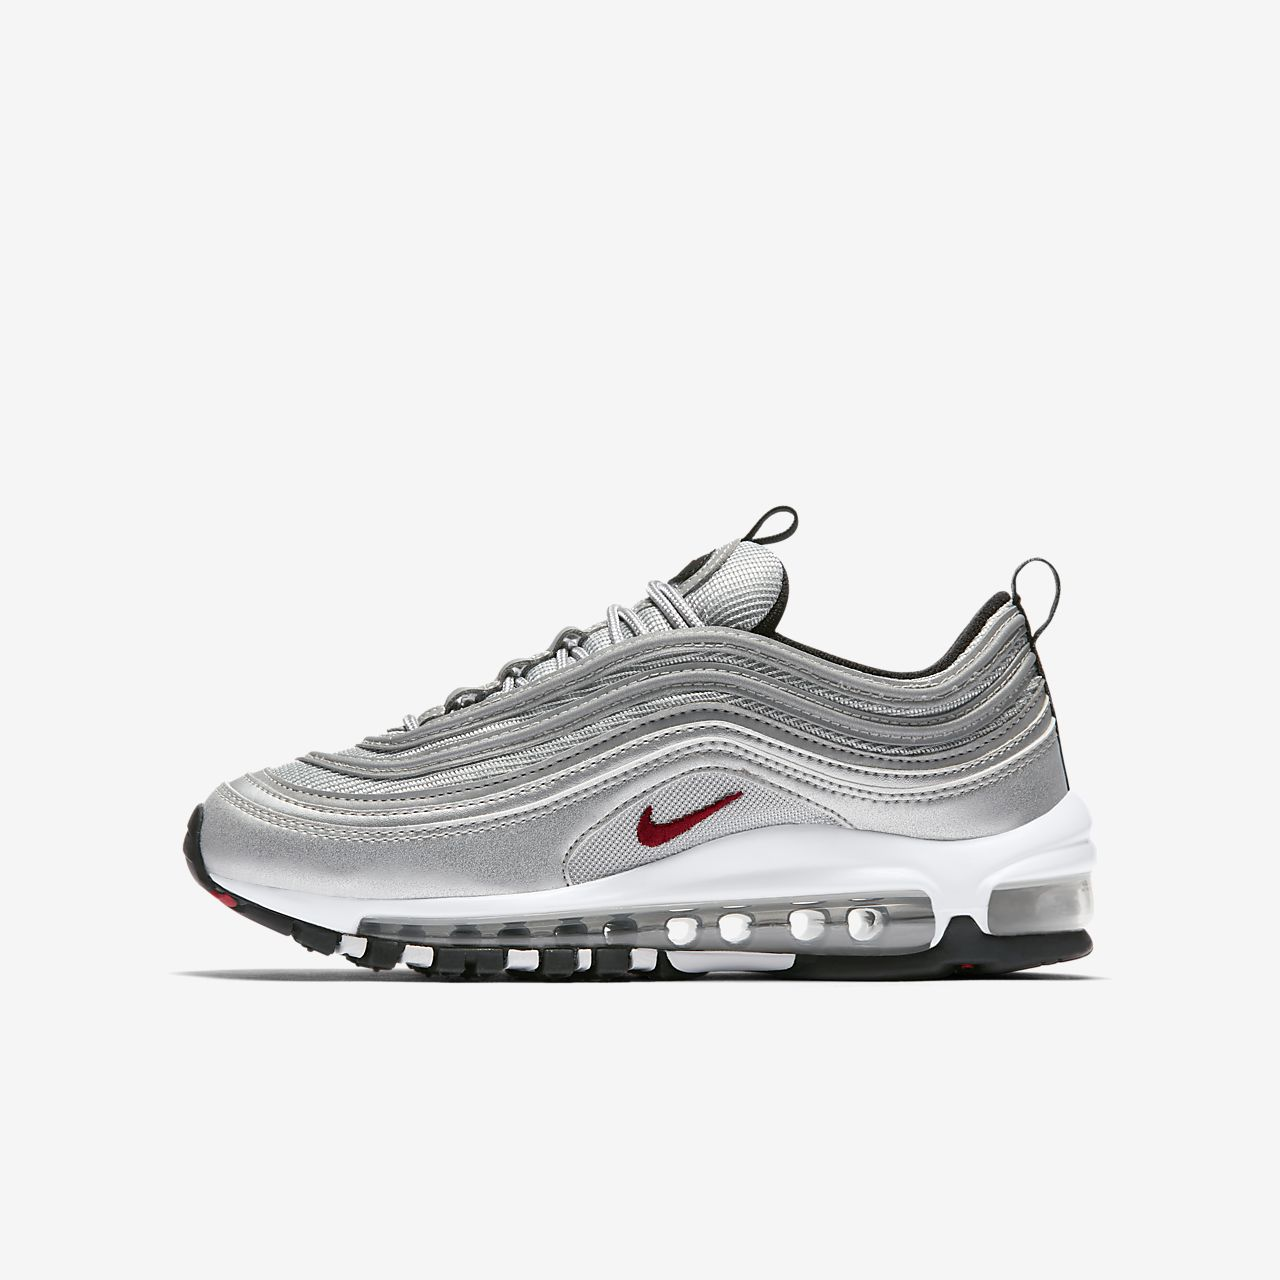 396271857a31 Nike Air Max 97 Older Kids  Shoe. Nike.com AU